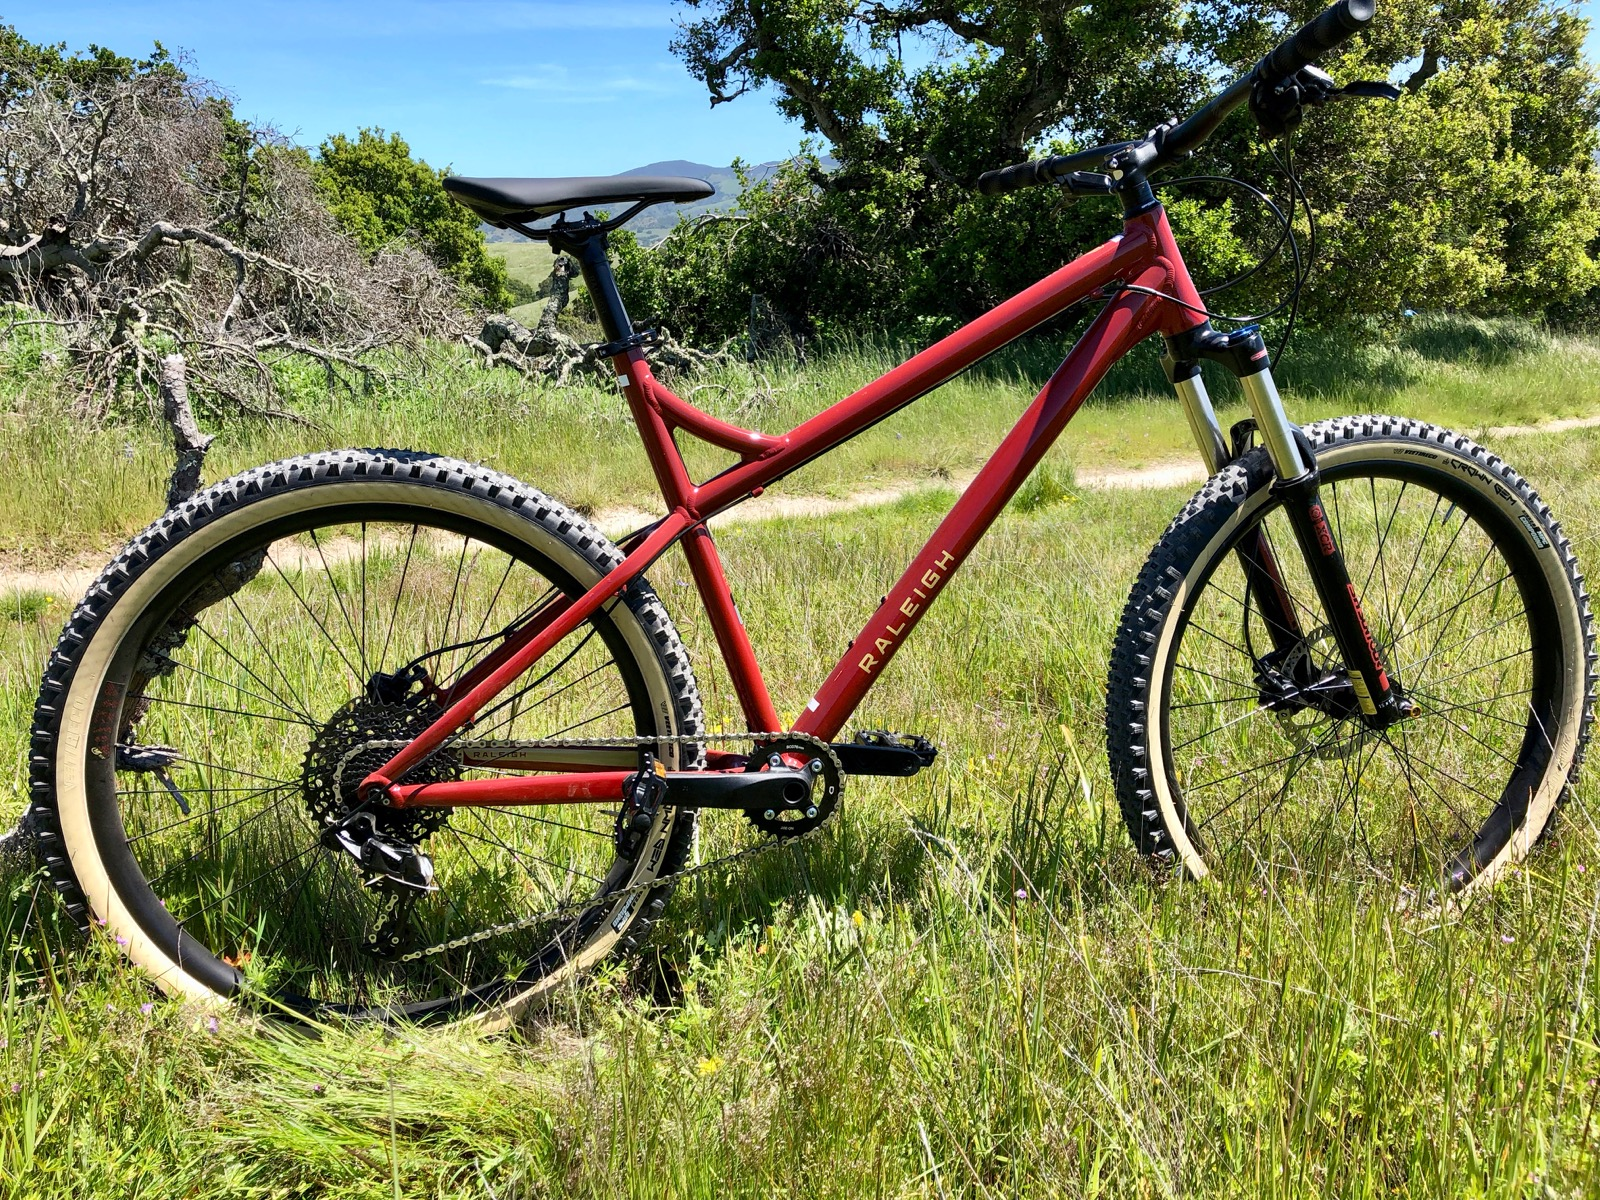 The Raleigh Tokul 3 Looks Great, Packs a Nice Spec for Under $1,000